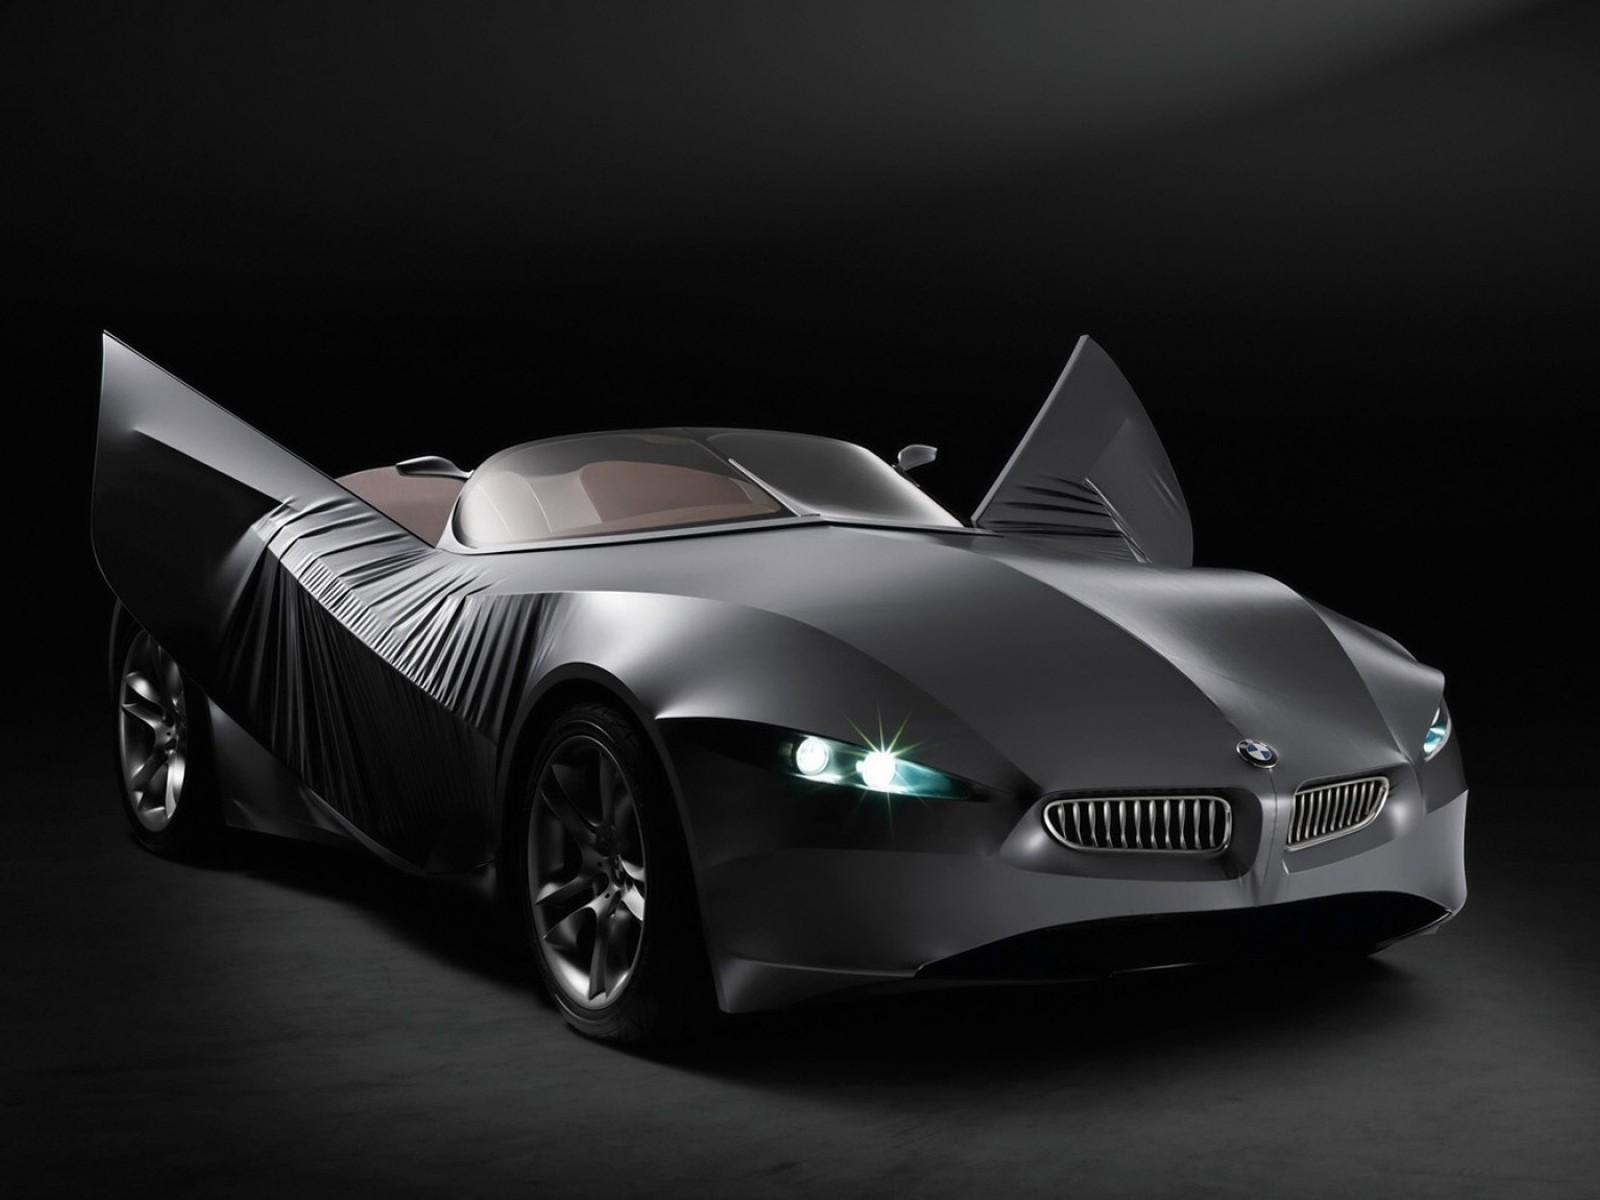 Free Cars HD Wallpapers: Bmw Gina Concept Cars HD Wallpapers